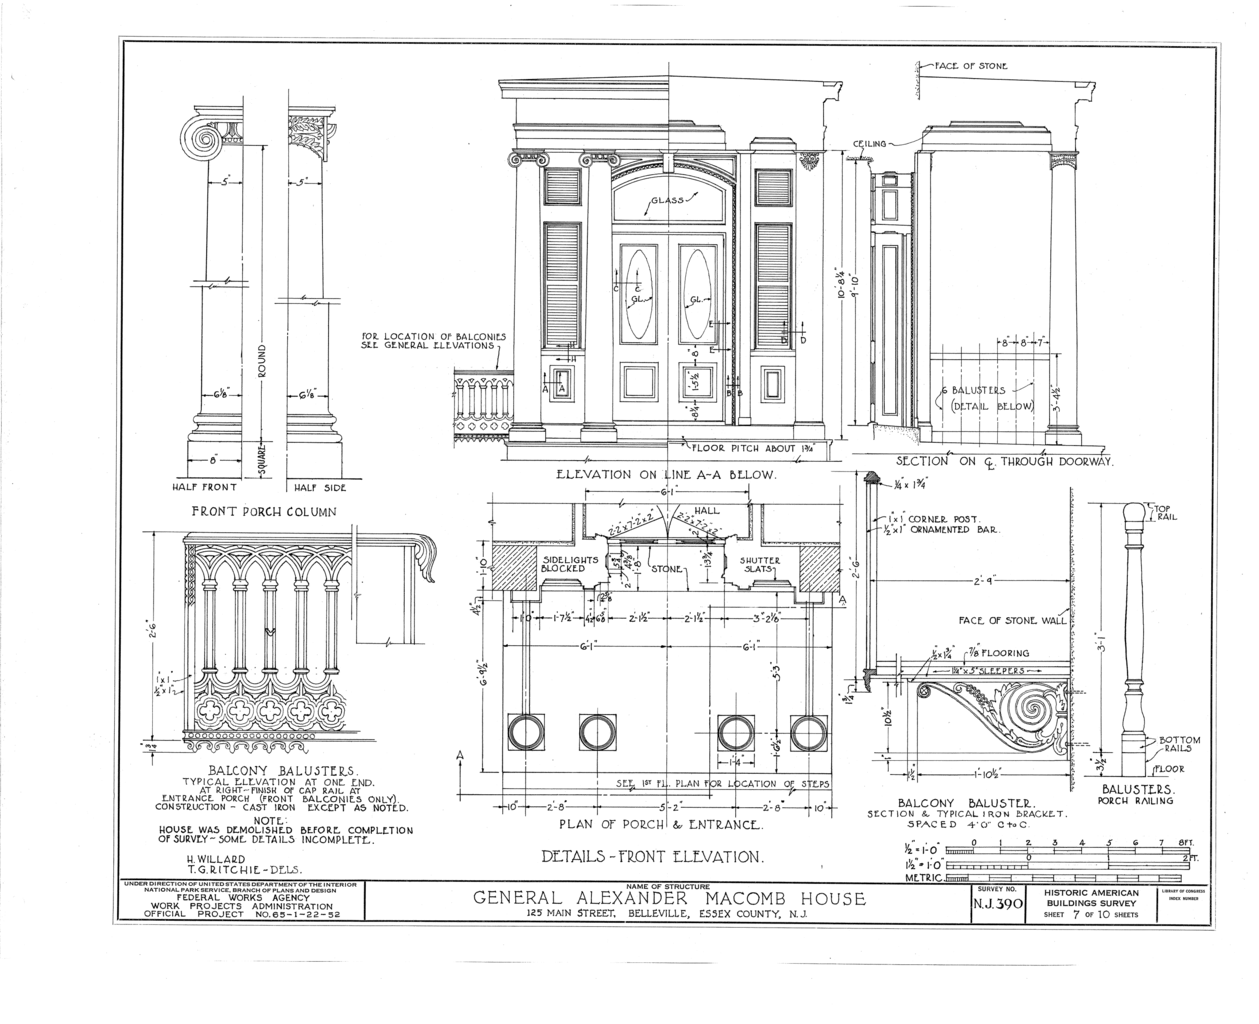 Filegeneral Alexander Macomb House 125 Main Street Belleville The Schematic For This Is Below Along With Some Construction Details Essex County Nj Habs Nj7 Belvi5 Sheet 7 Of 10